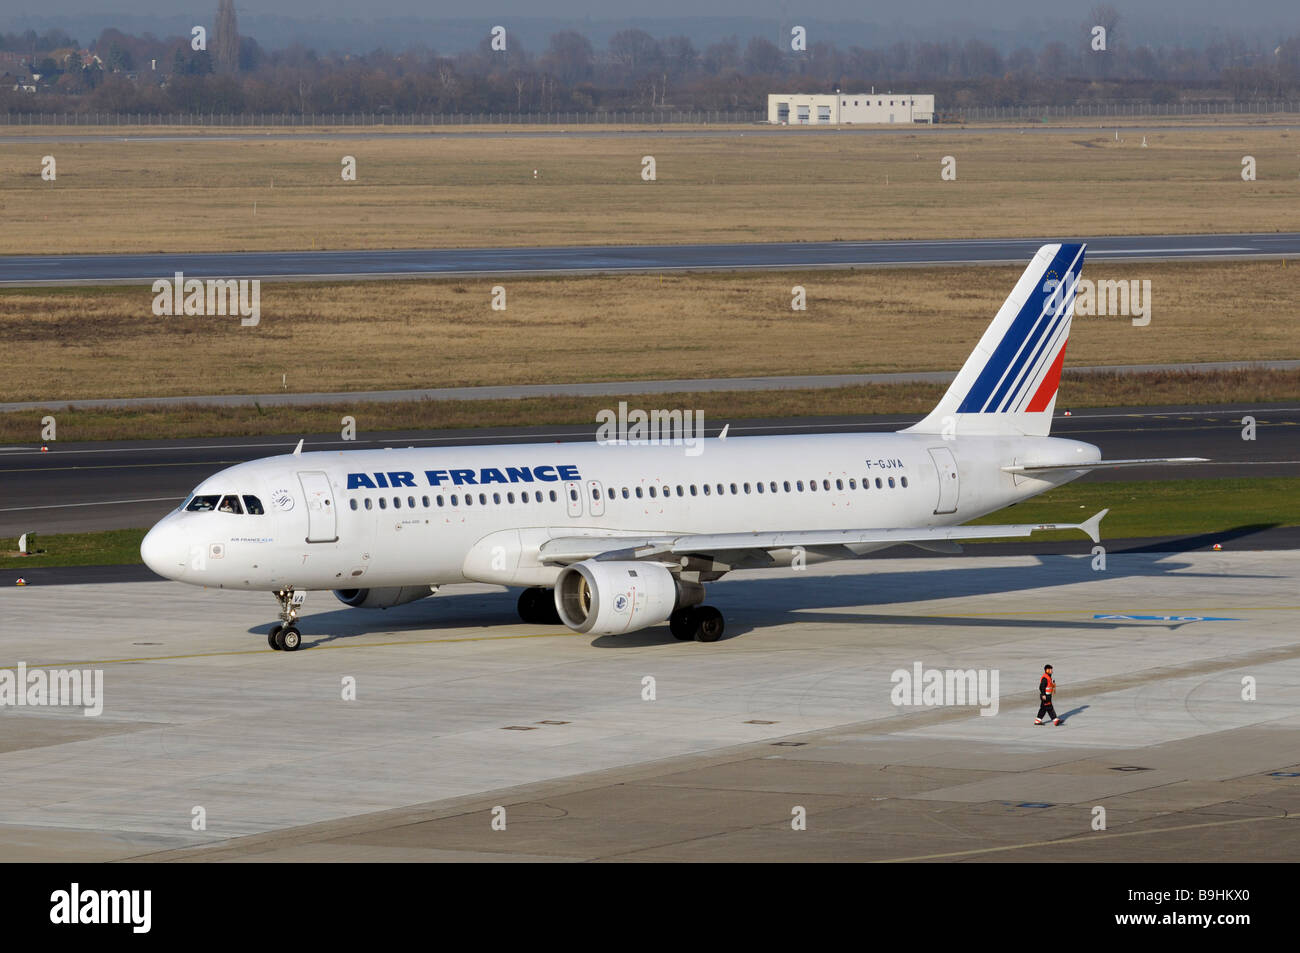 Air France KLM Airbus A 320 in the manoeuvring area, Duesseldorf International Airport, North Rhine-Westphalia, - Stock Image